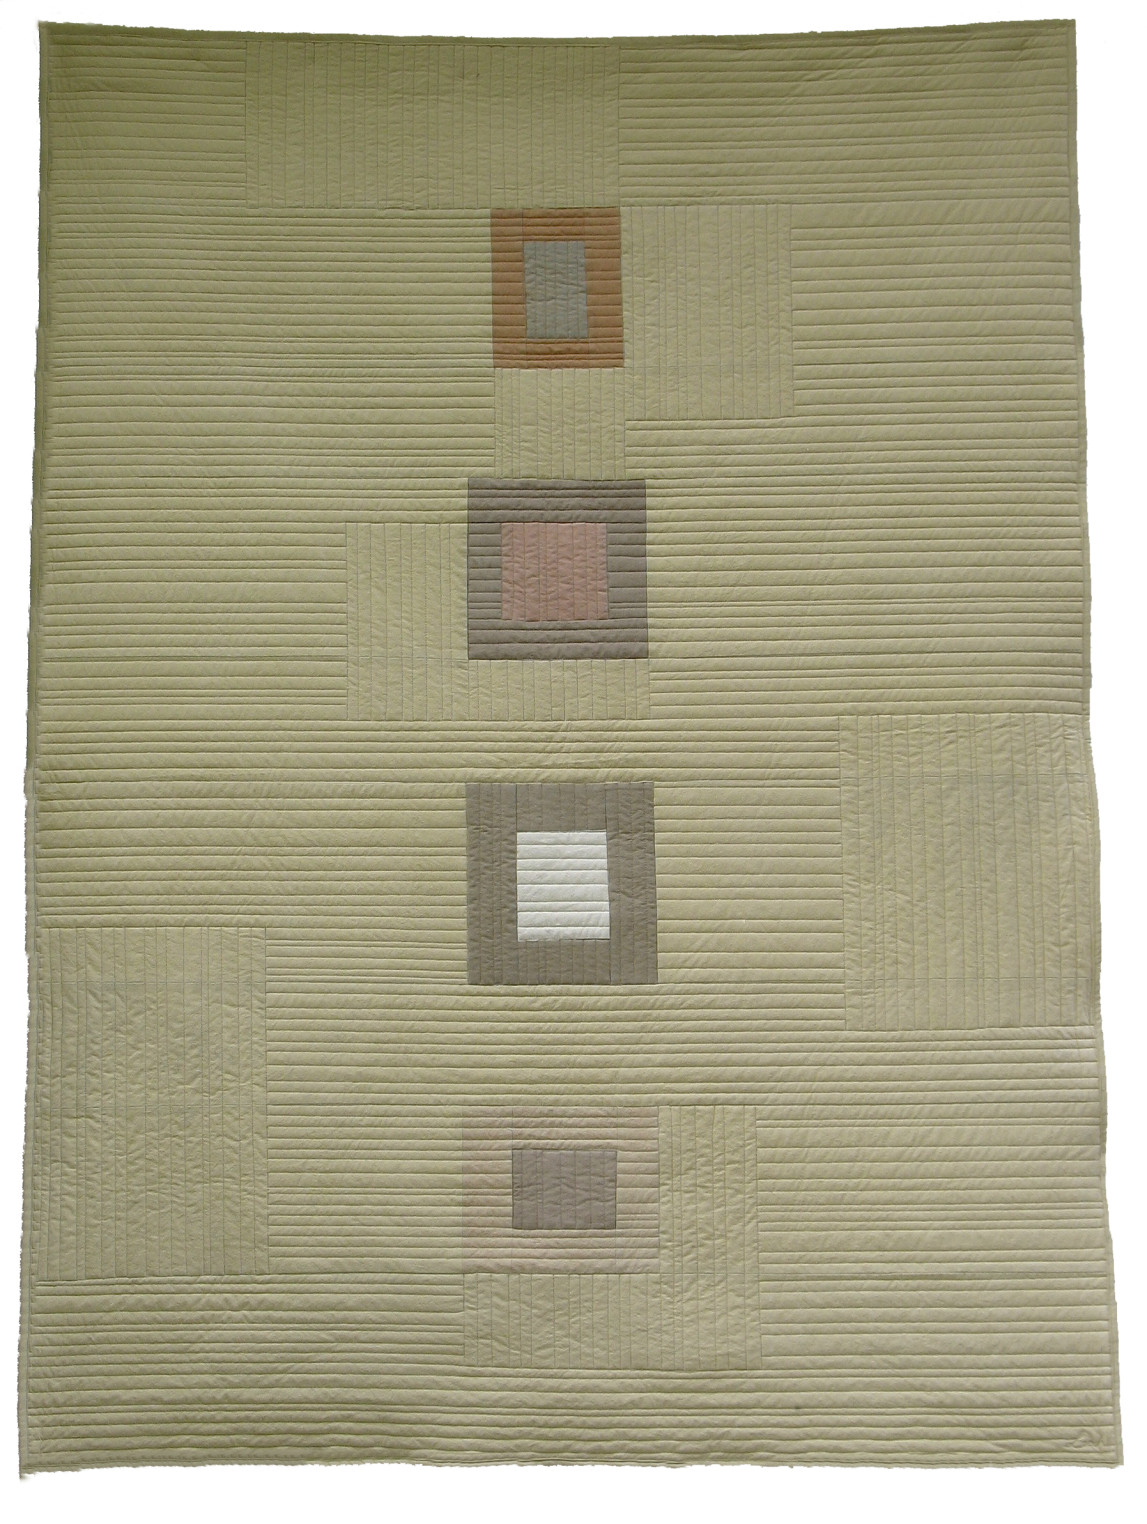 Leah_Weinstein_art_quilts_EarthTones2